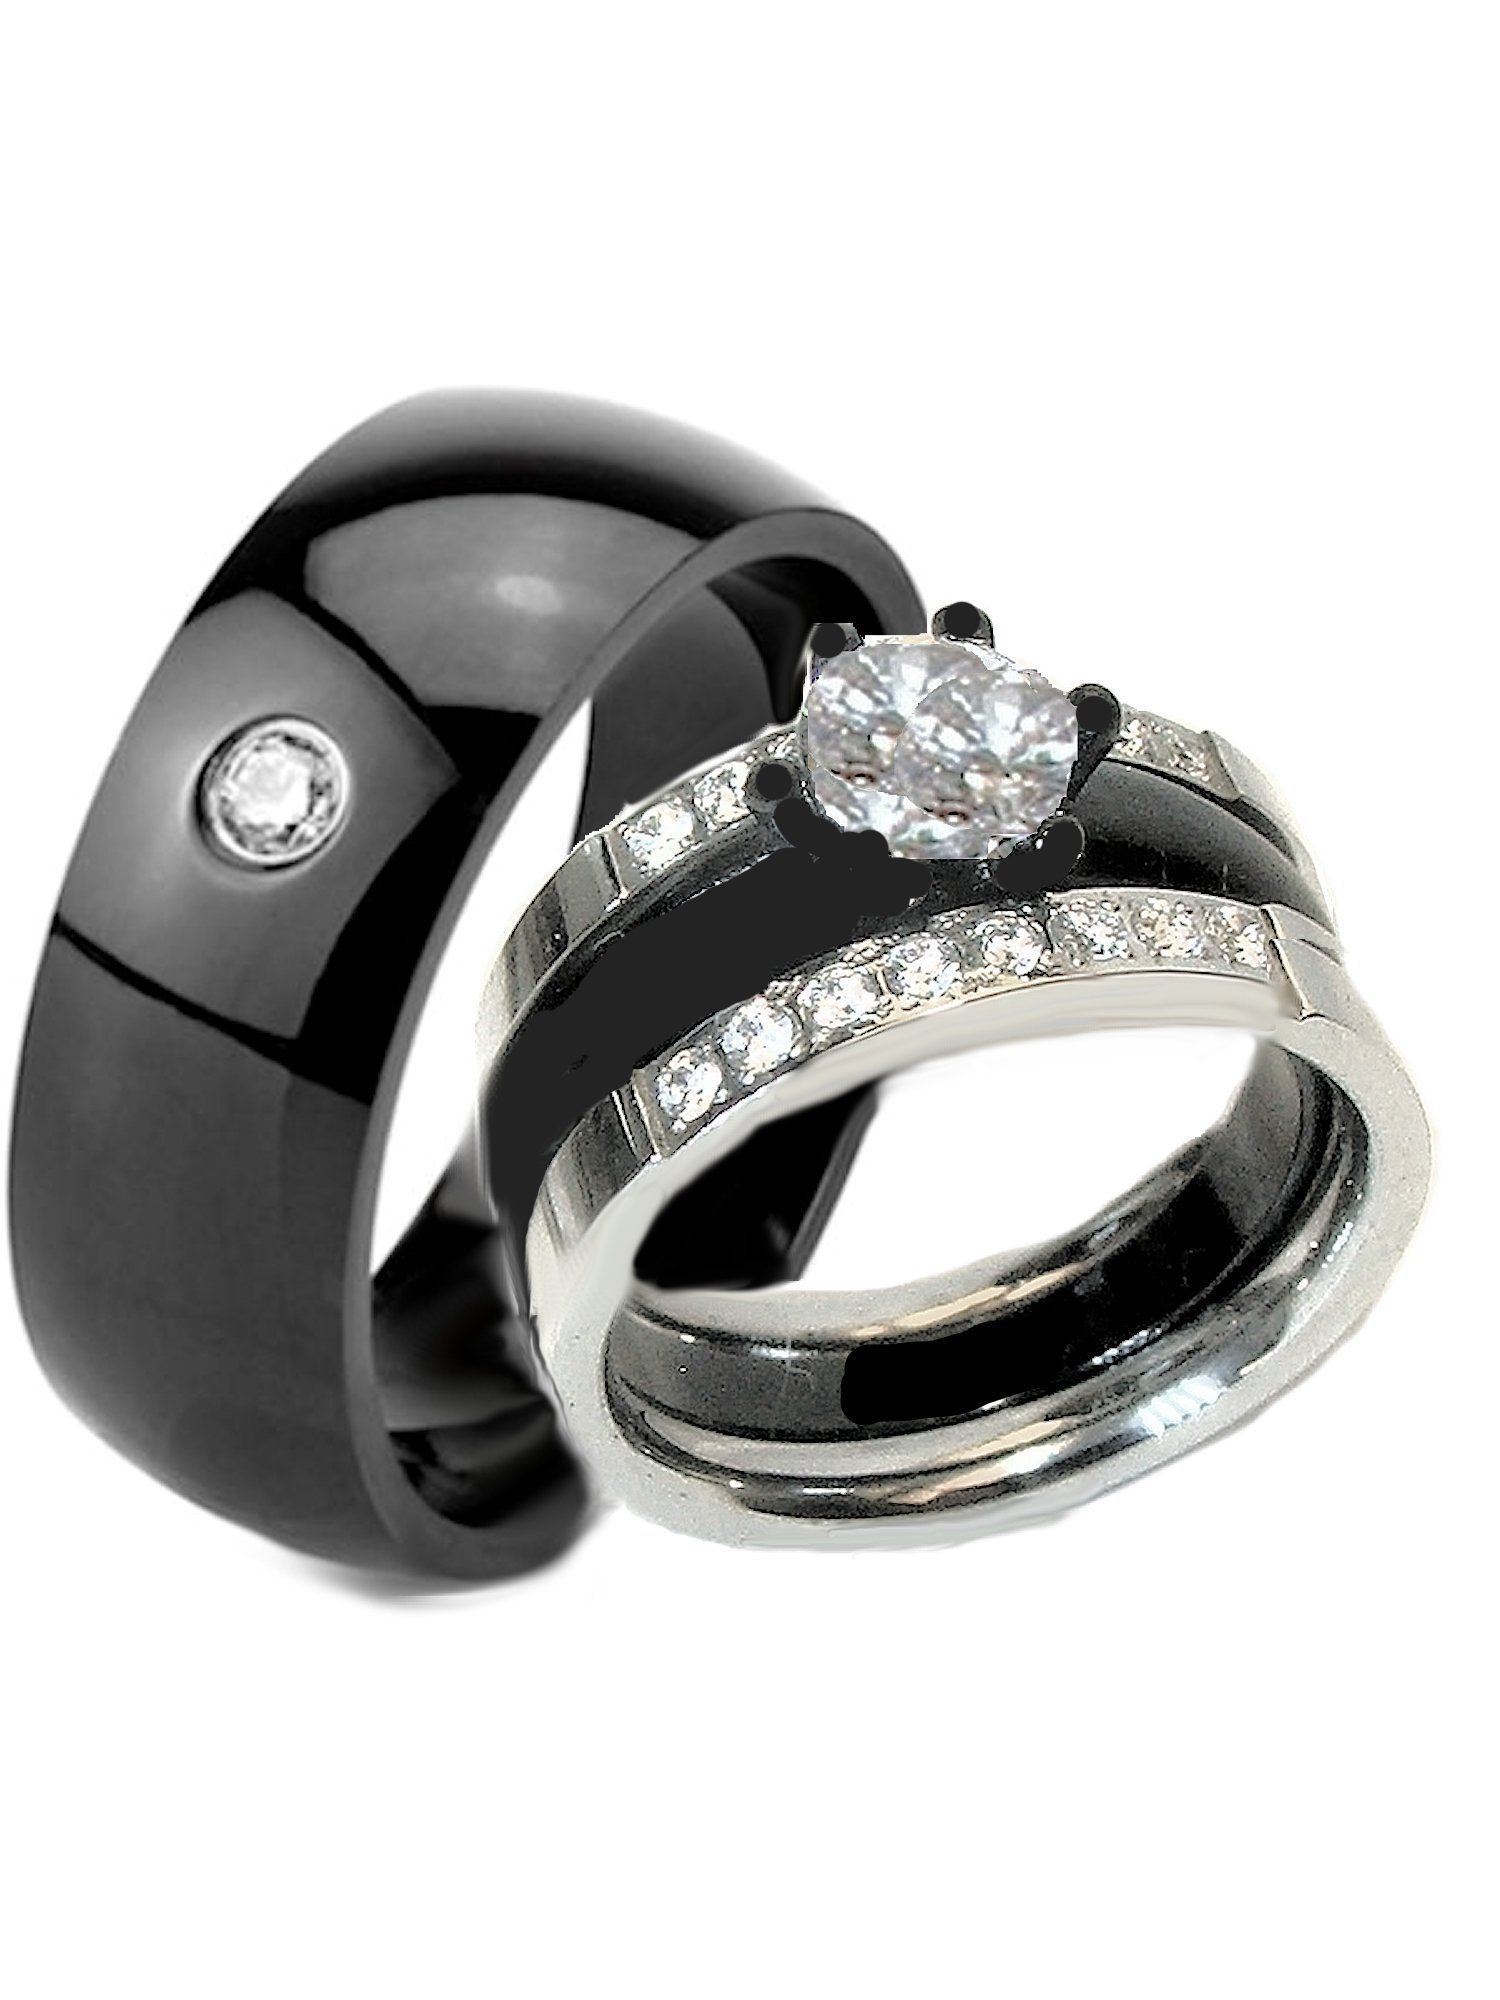 His Her Wedding Ring Set Black Stainless Stainless Steel Rings Weddingringsets Three Stone Engagement Rings Wedding Ring Sets Cool Wedding Rings